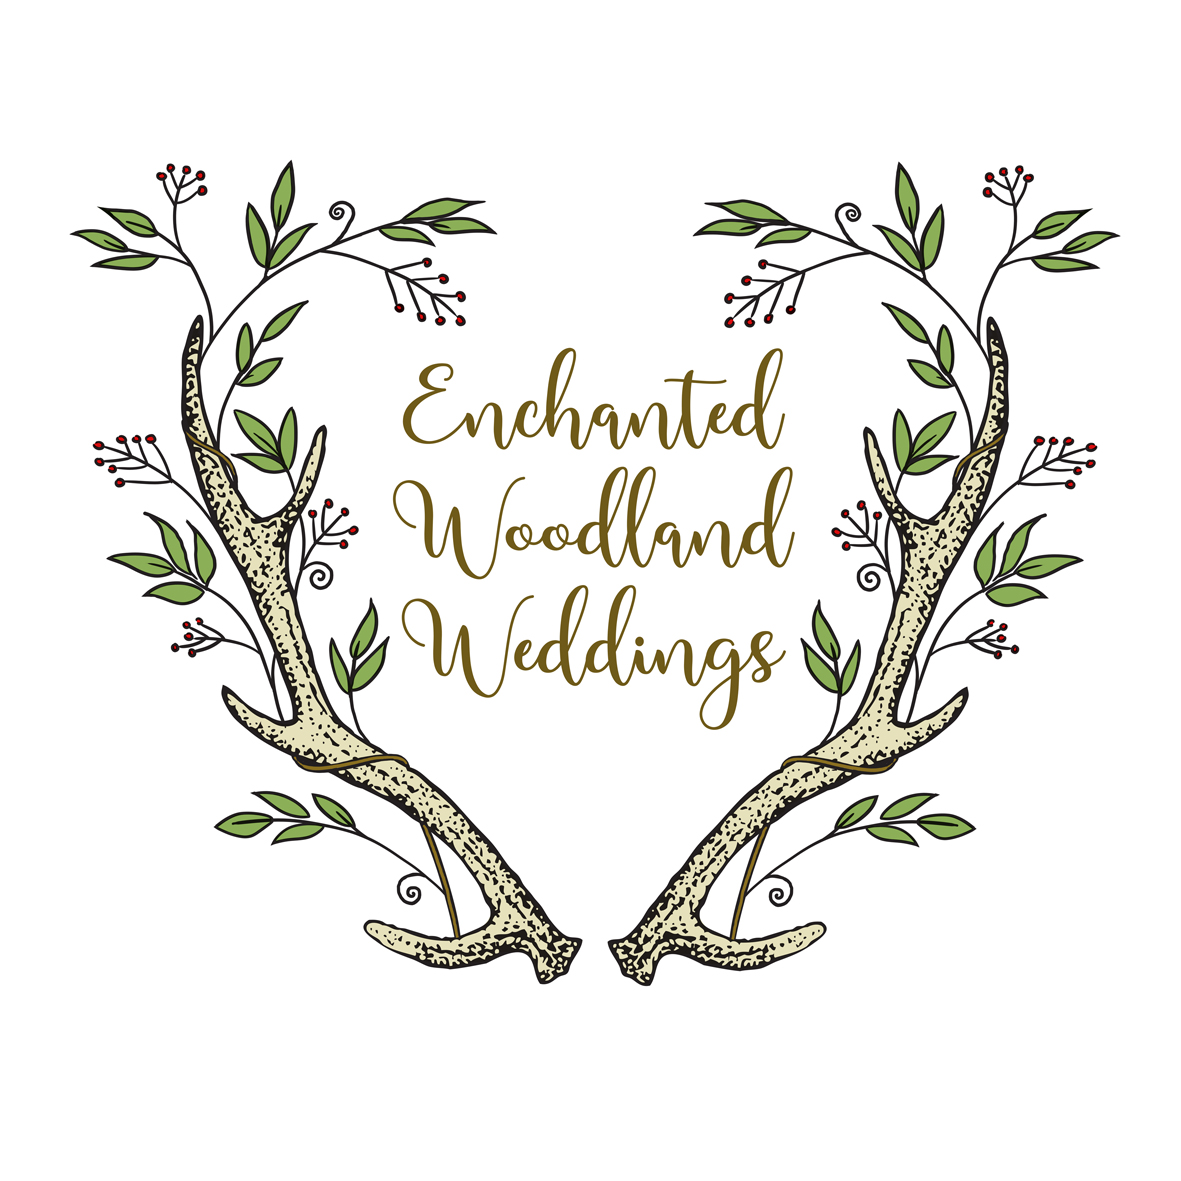 Enchanted Woodland Weddings